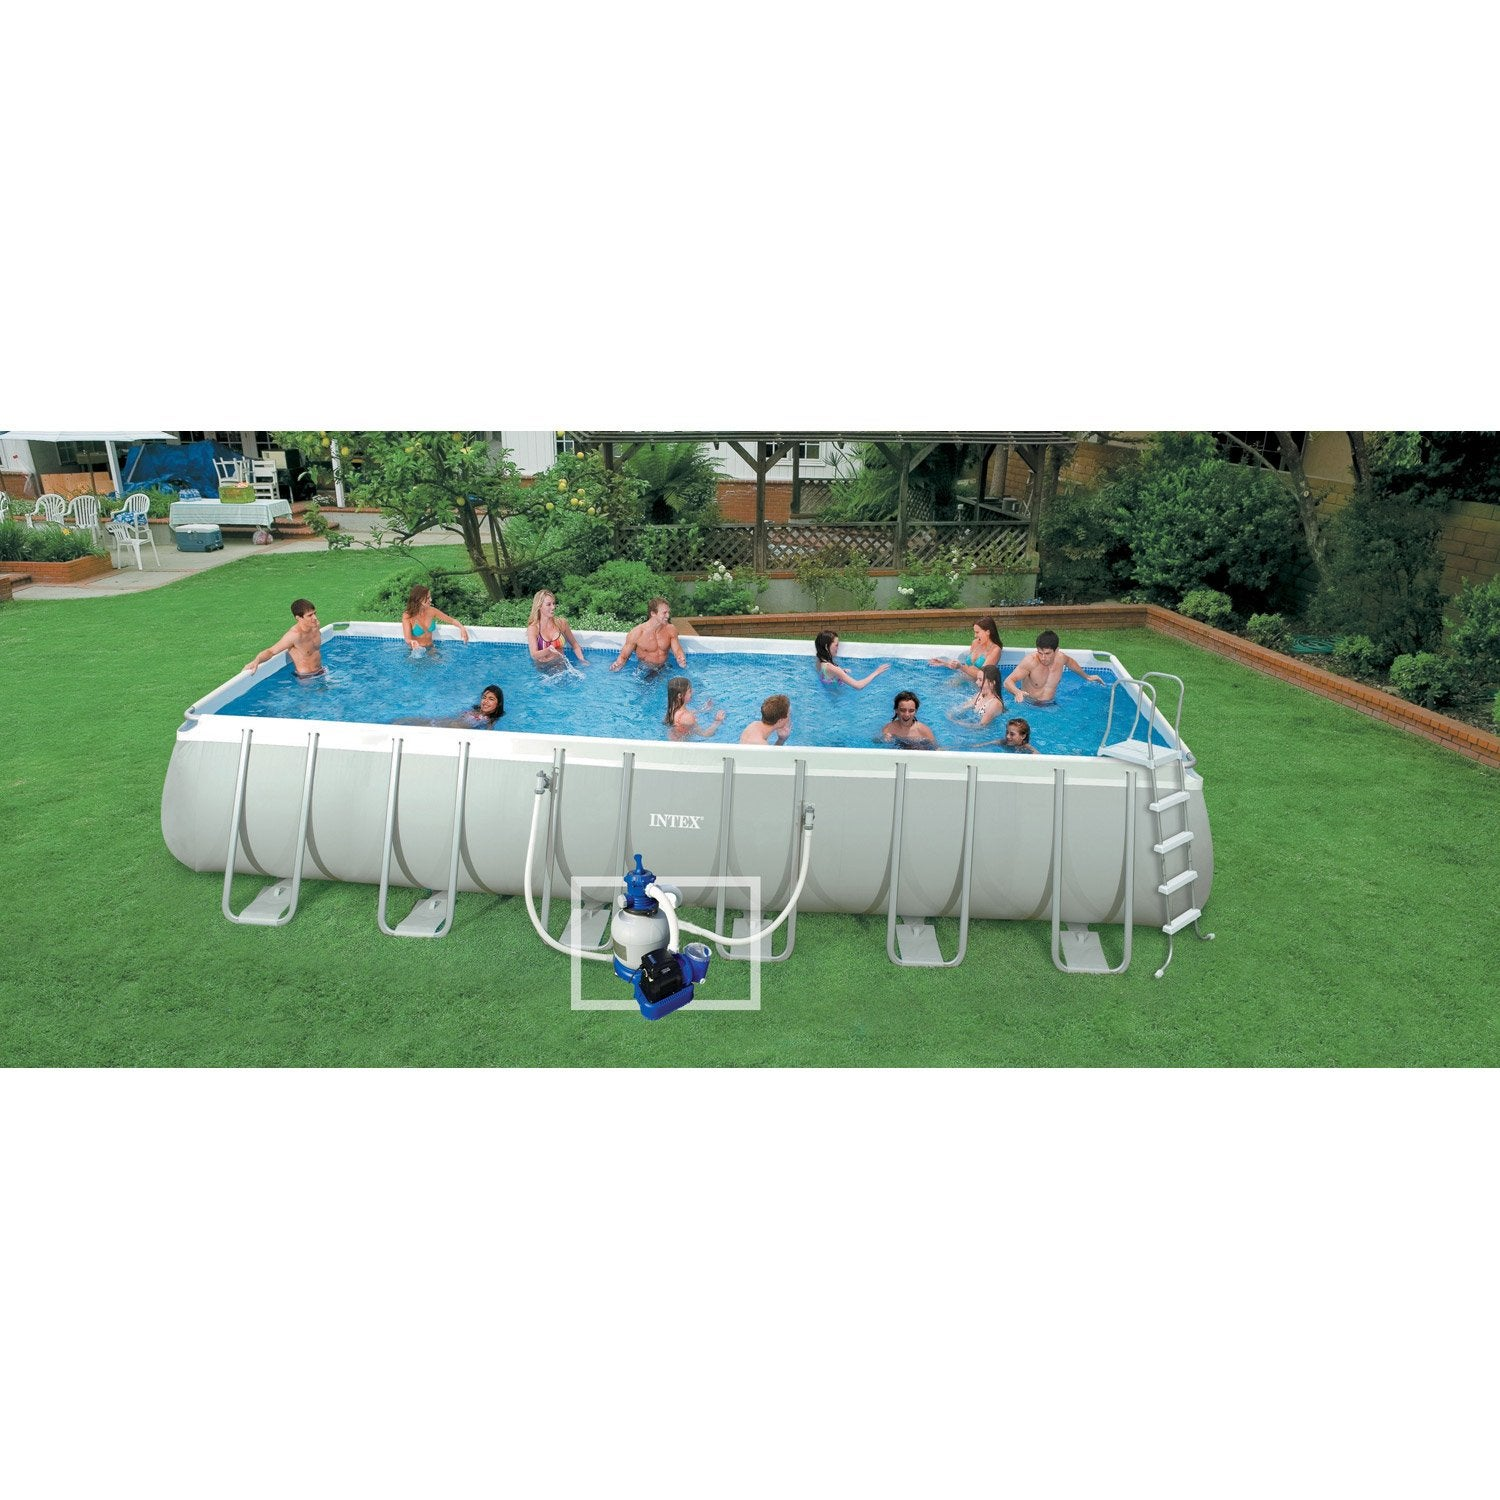 Piscine hors sol autoportante tubulaire intex l x l - Habillage piscine hors sol intex ...